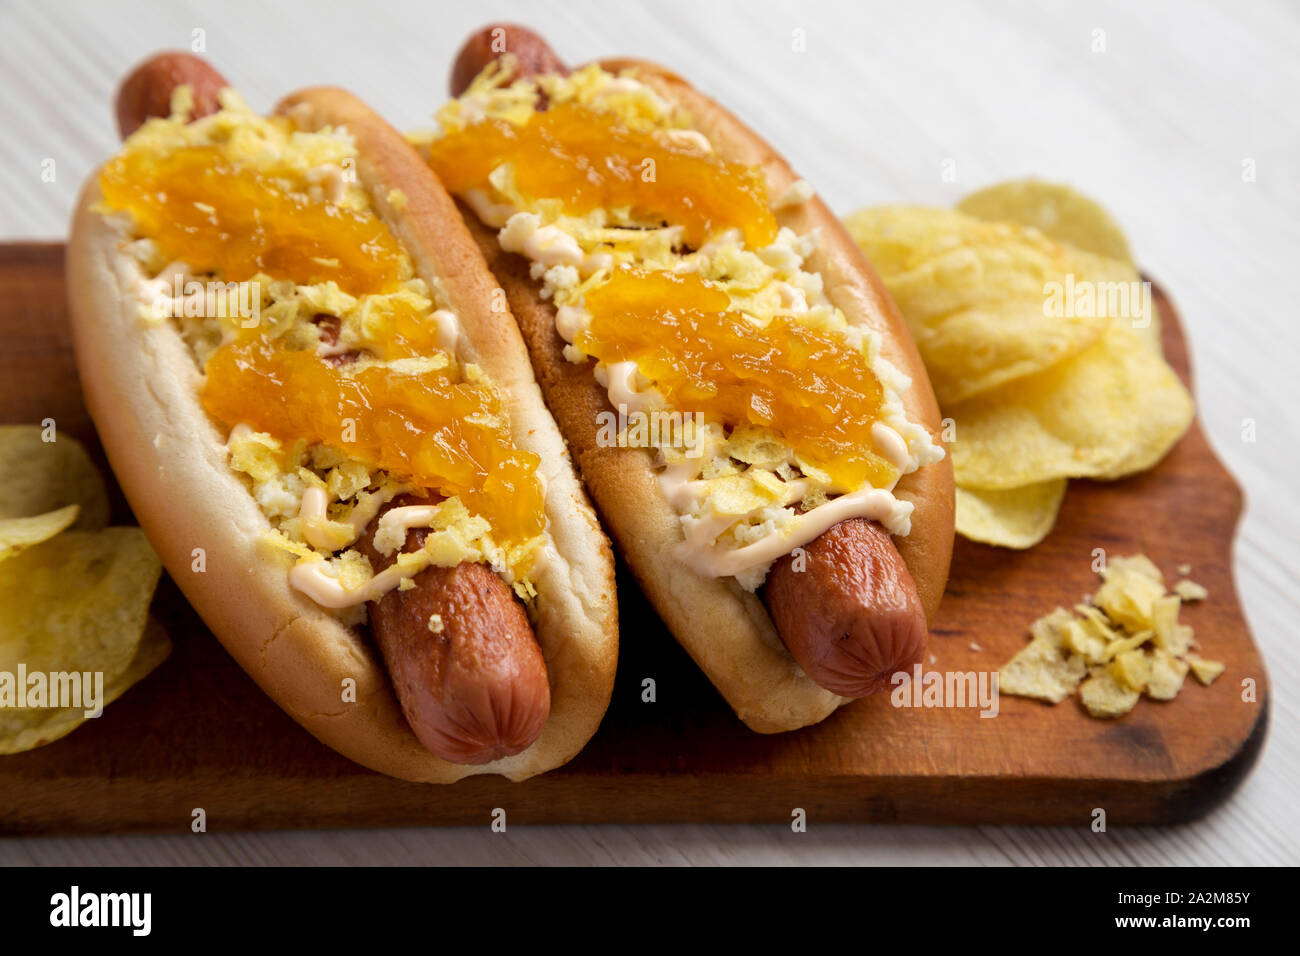 Homemade colombian hot dogs with pineapple sauce, chips and mayo ketchup on a rustic wooden board on a white wooden surface, side view. Closeup. Stock Photo